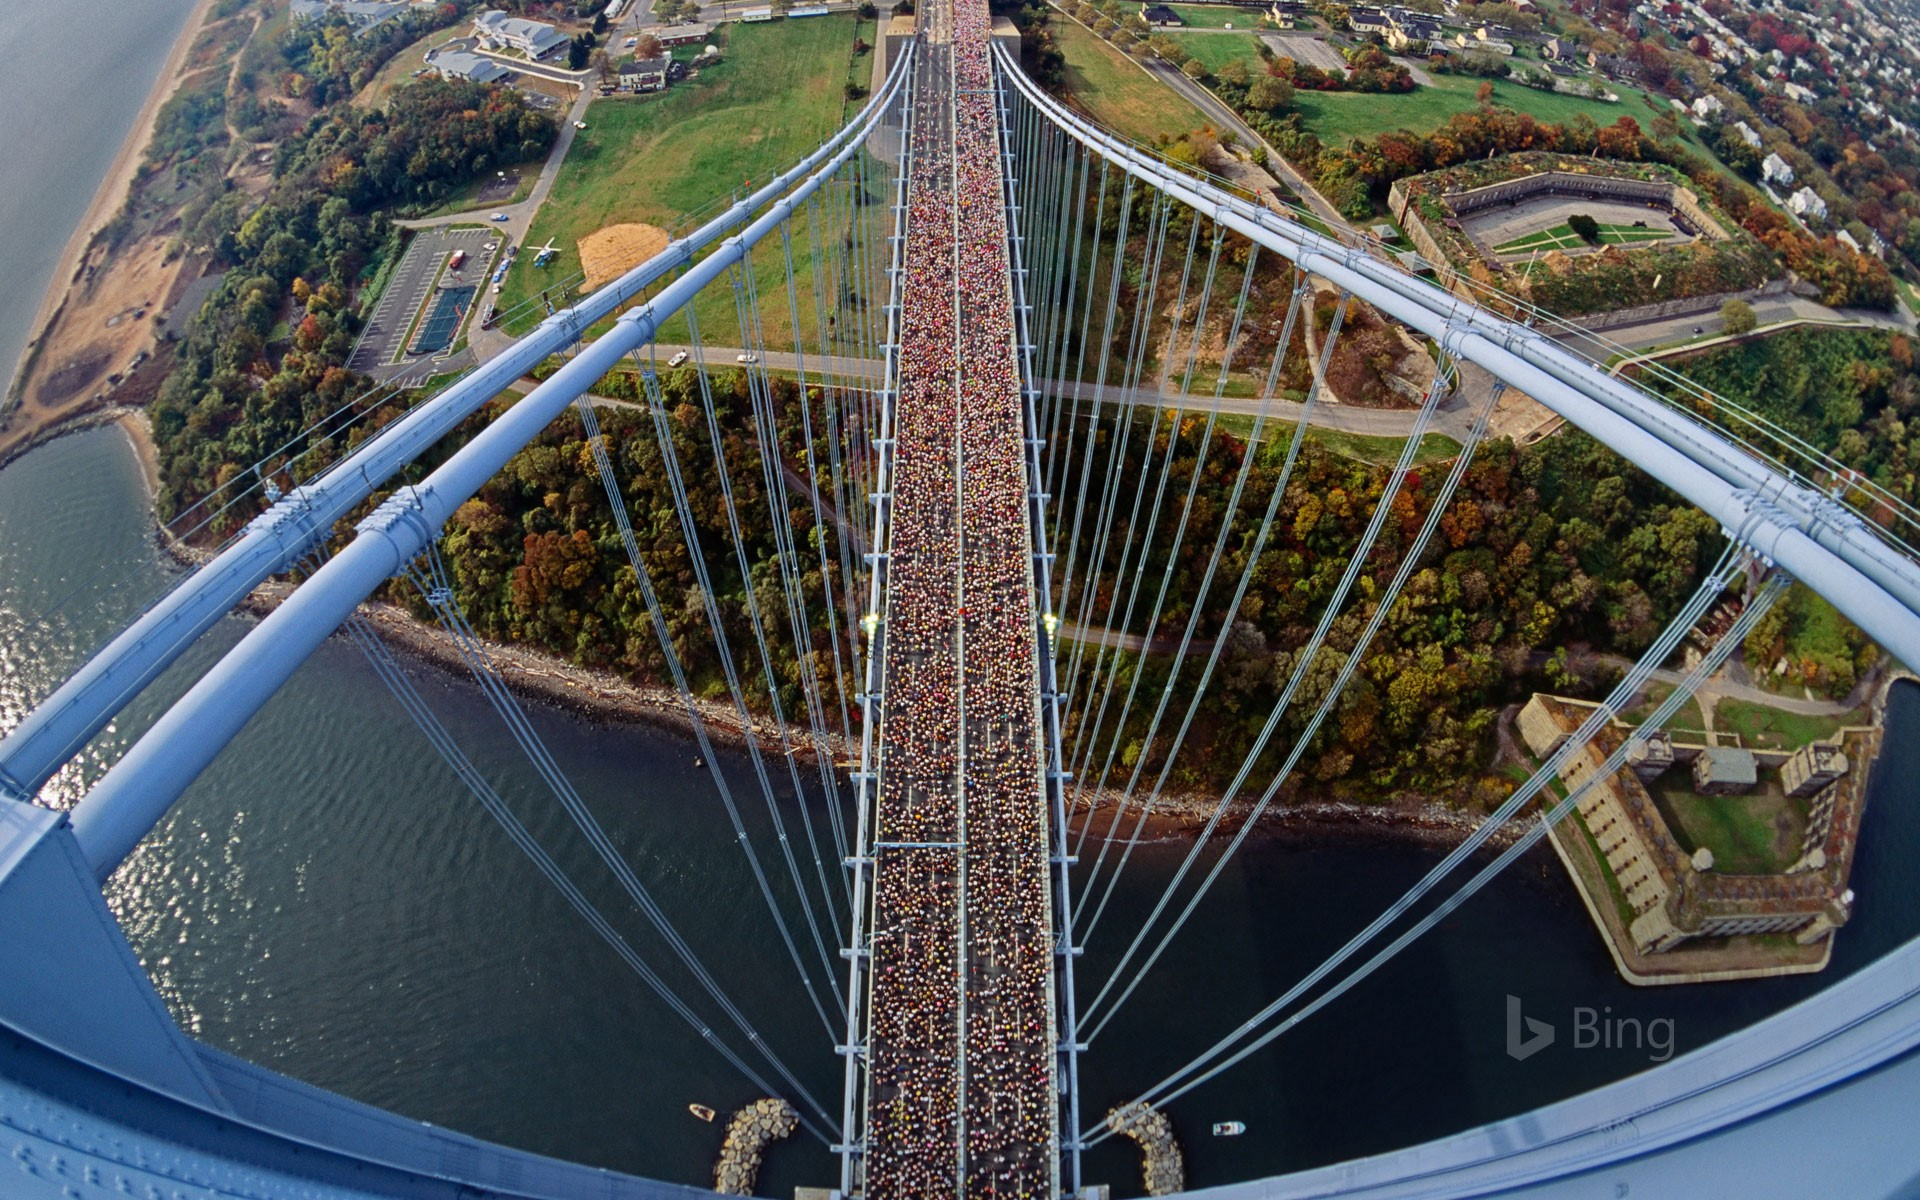 Runners on the Verrazano-Narrows Bridge between Staten Island and Brooklyn, New York